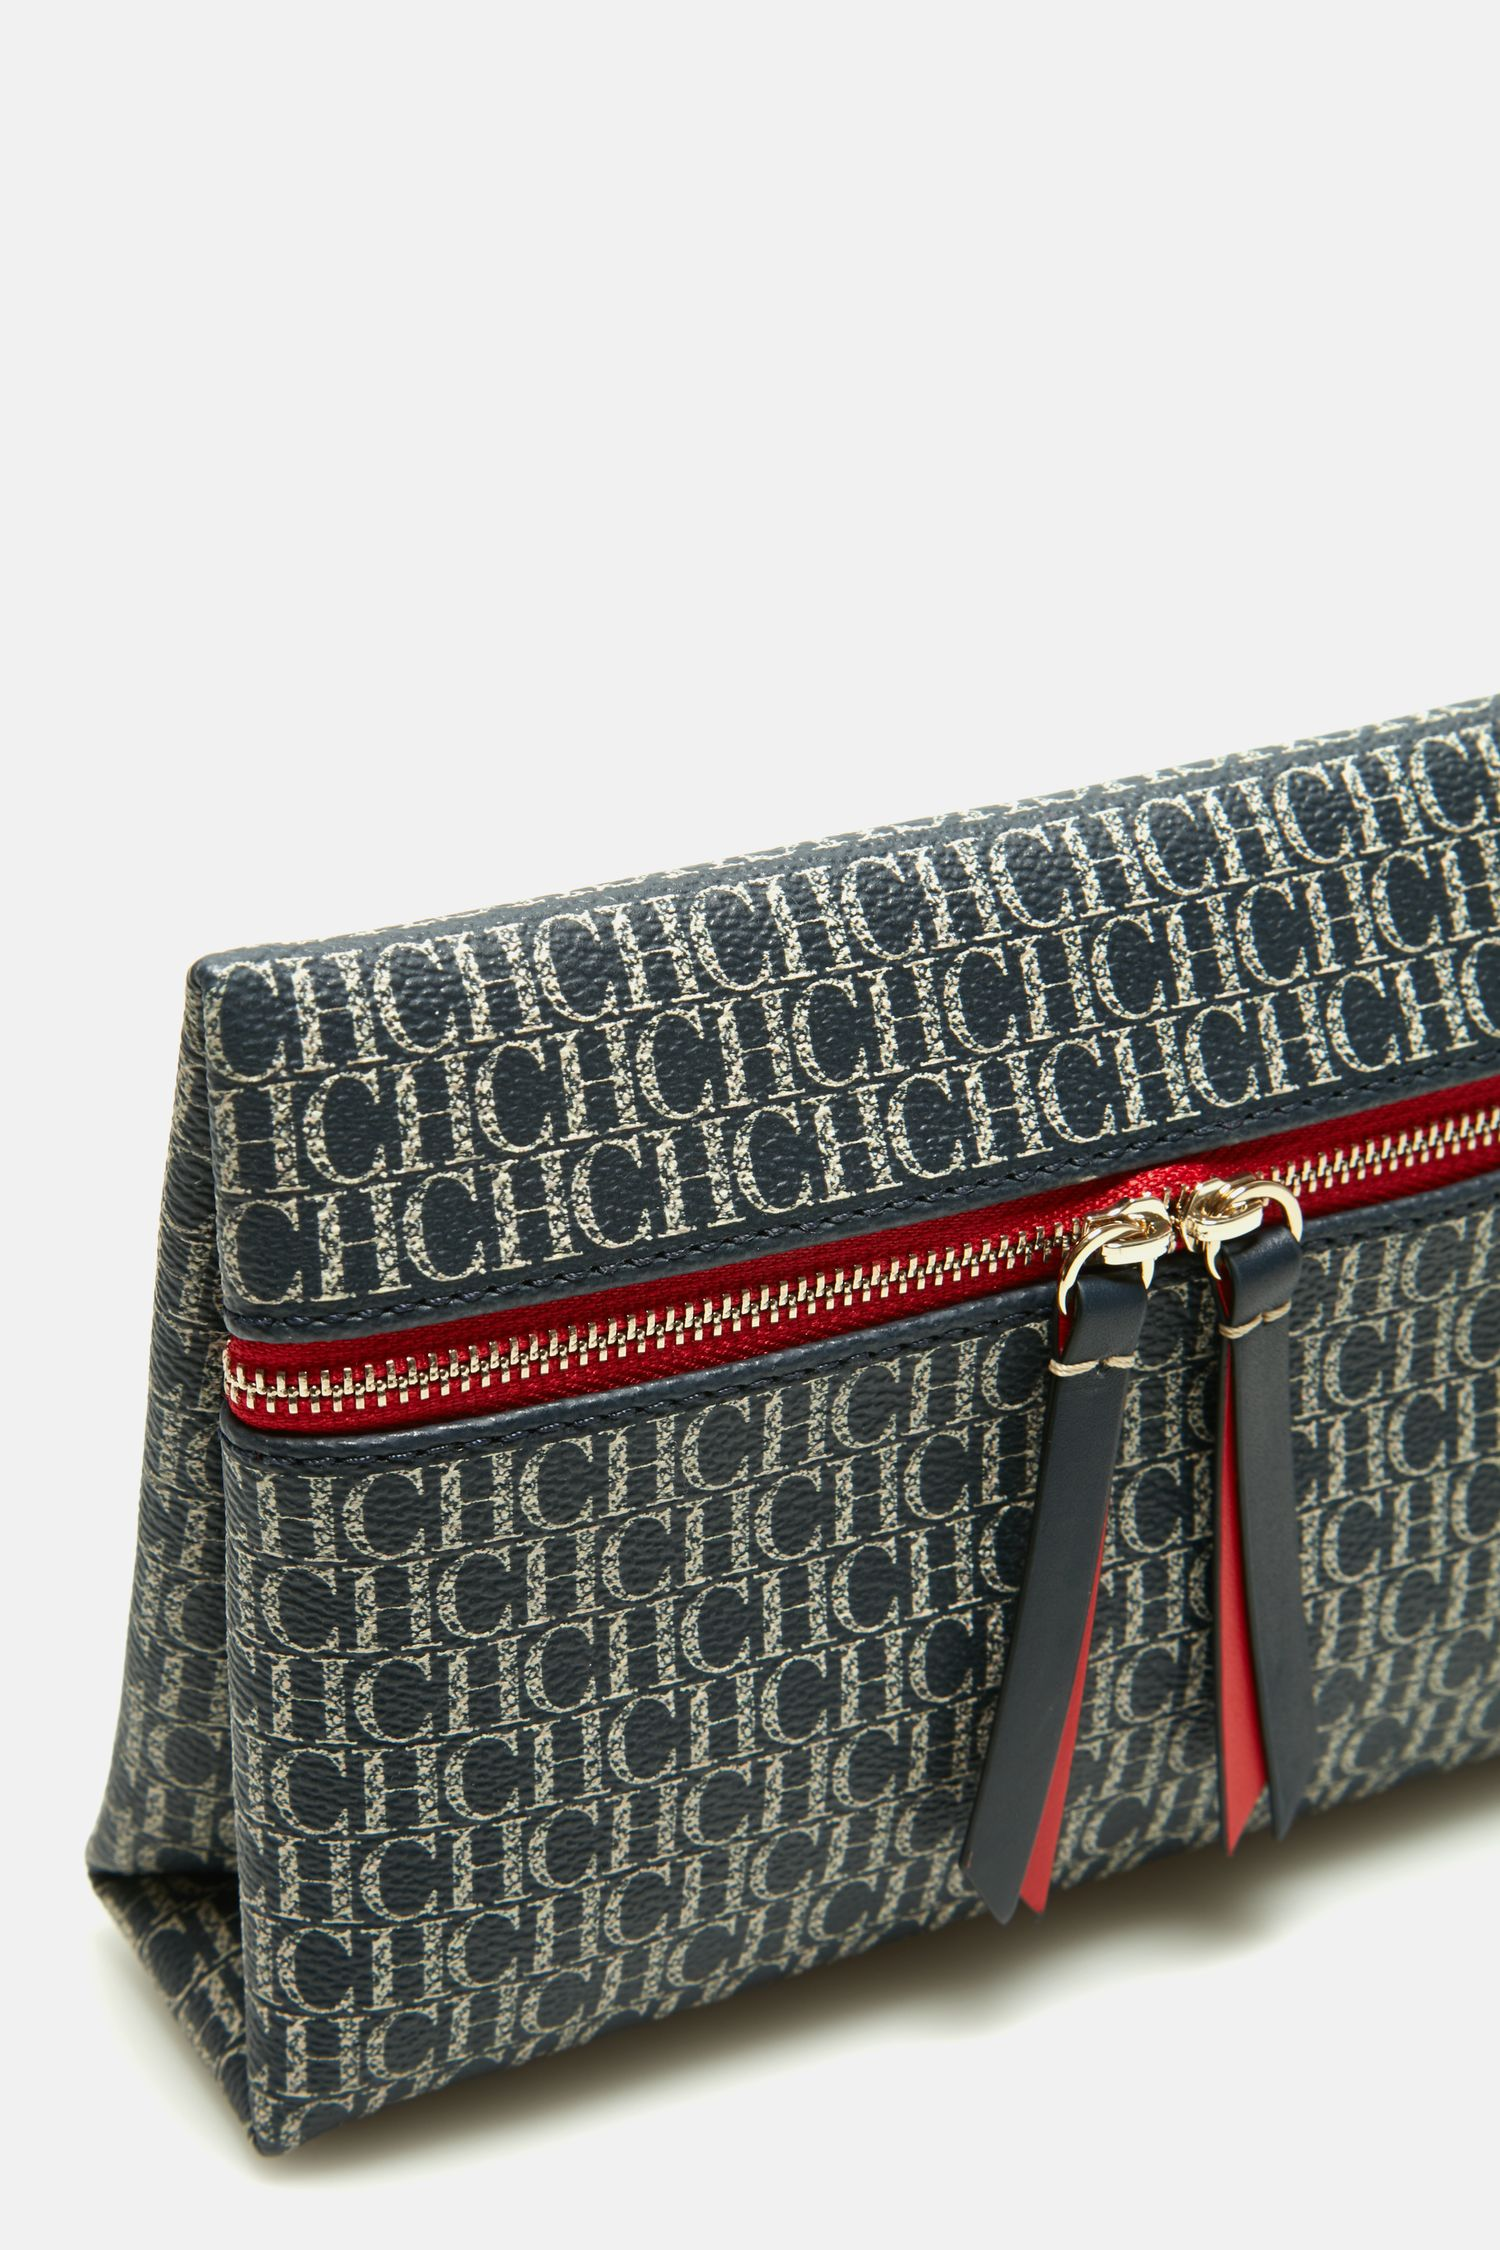 Inro | Small pouch